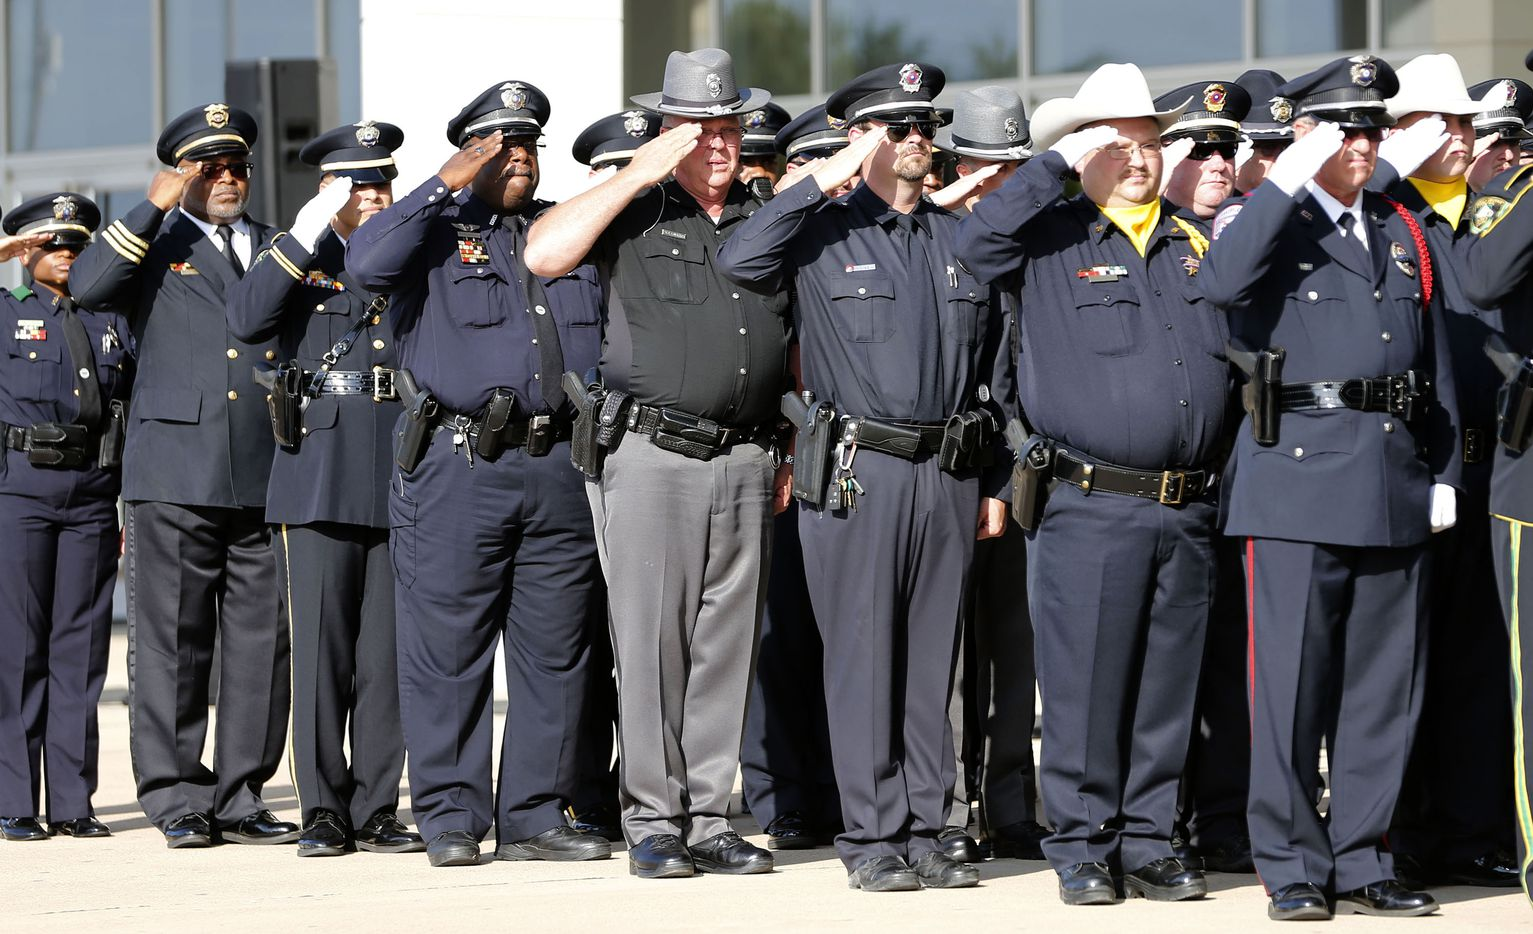 Officers from various locations salute as DART Officer Brent Thompson is carried inside for a memorial service at The Potter's House in Dallas on Wednesday, July 13, 2016. Thompson was one of five officers killed last week when a gunman opened fire during a Black Lives Matter rally in downtown Dallas.